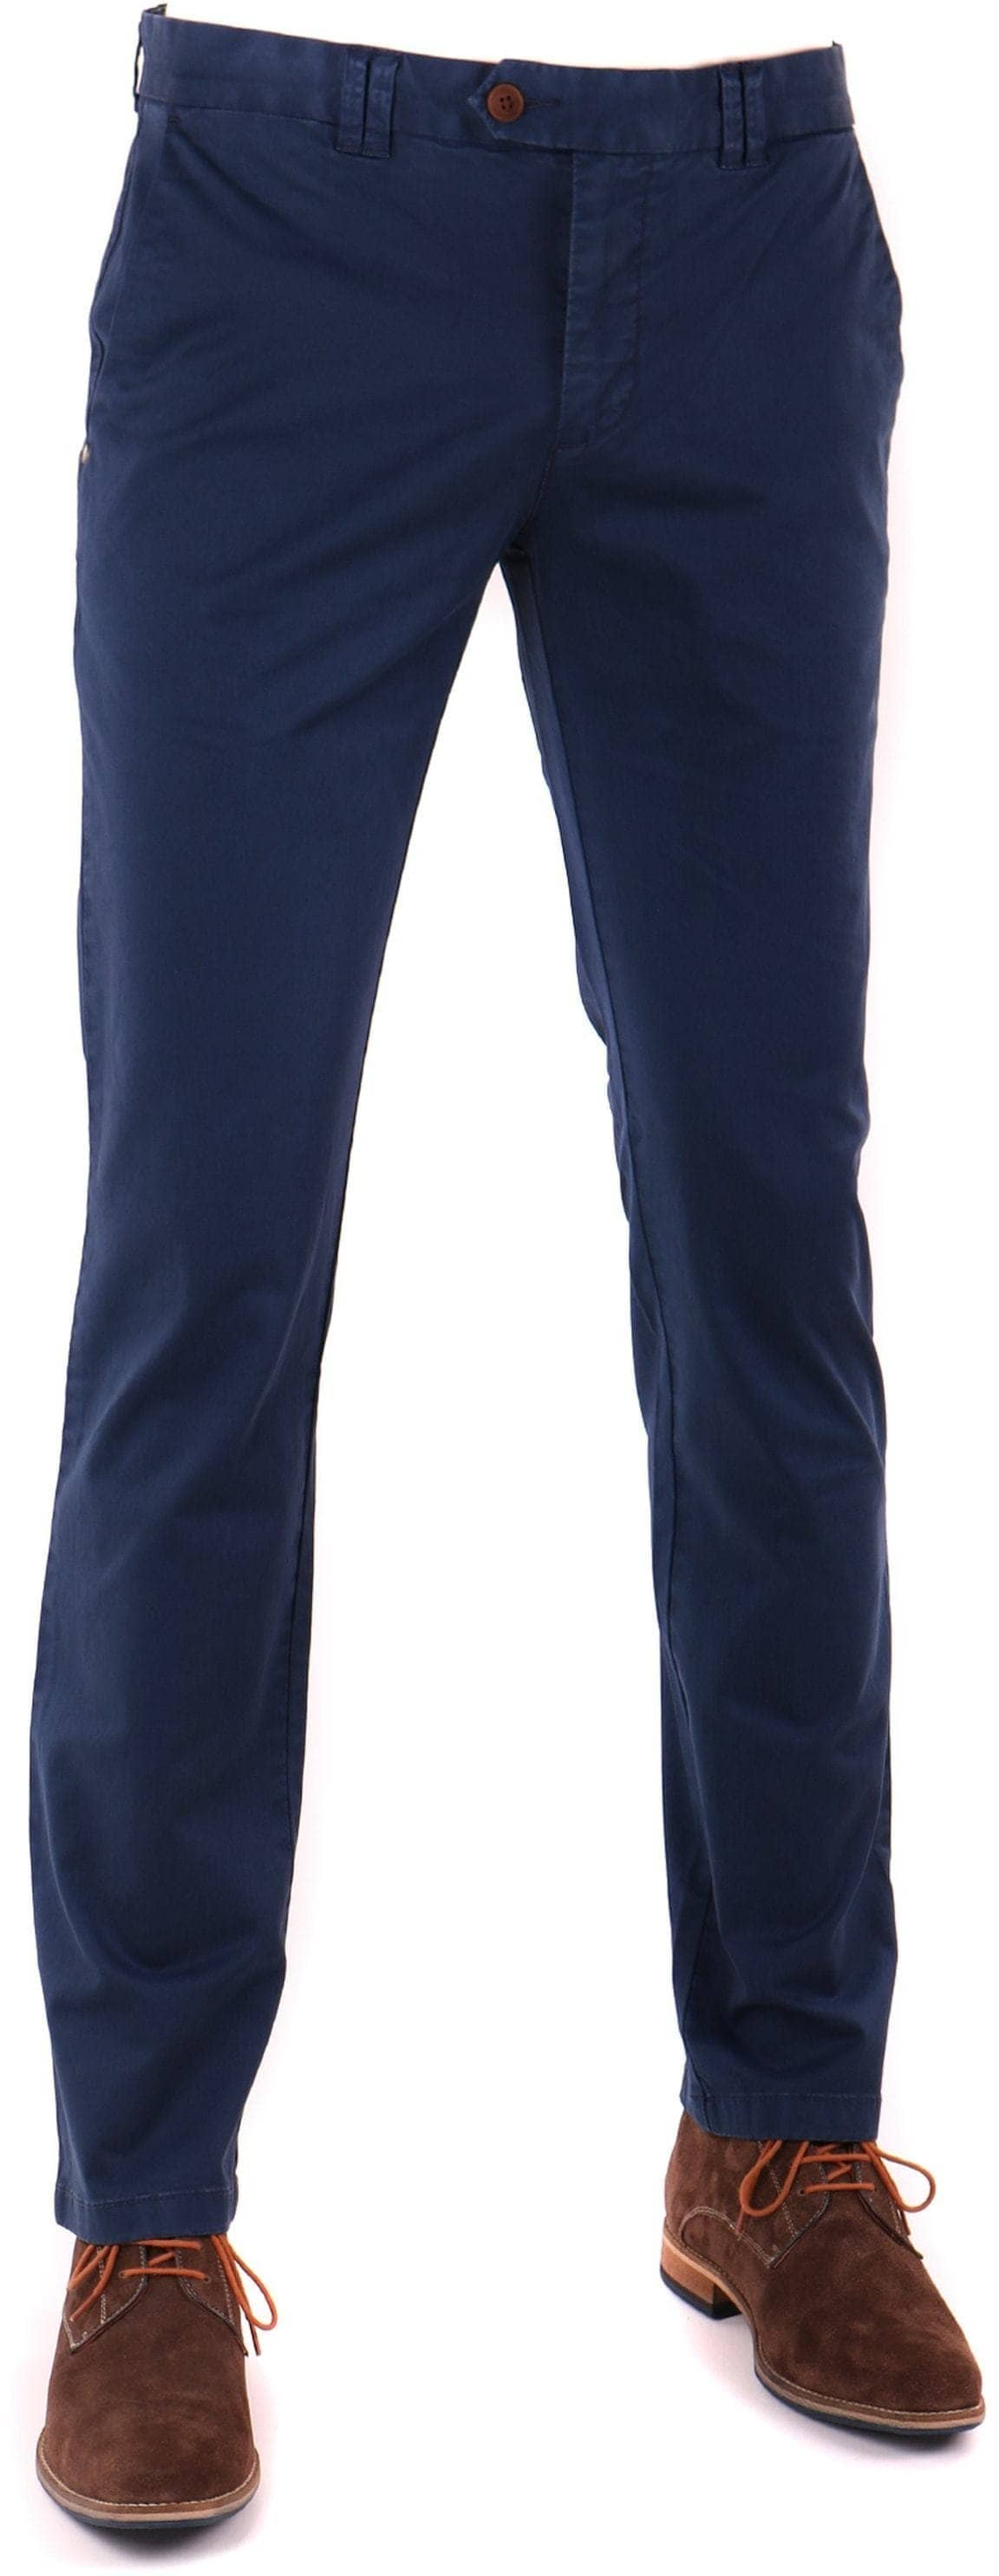 Suitable Chino Broek Donkerblauw foto 0